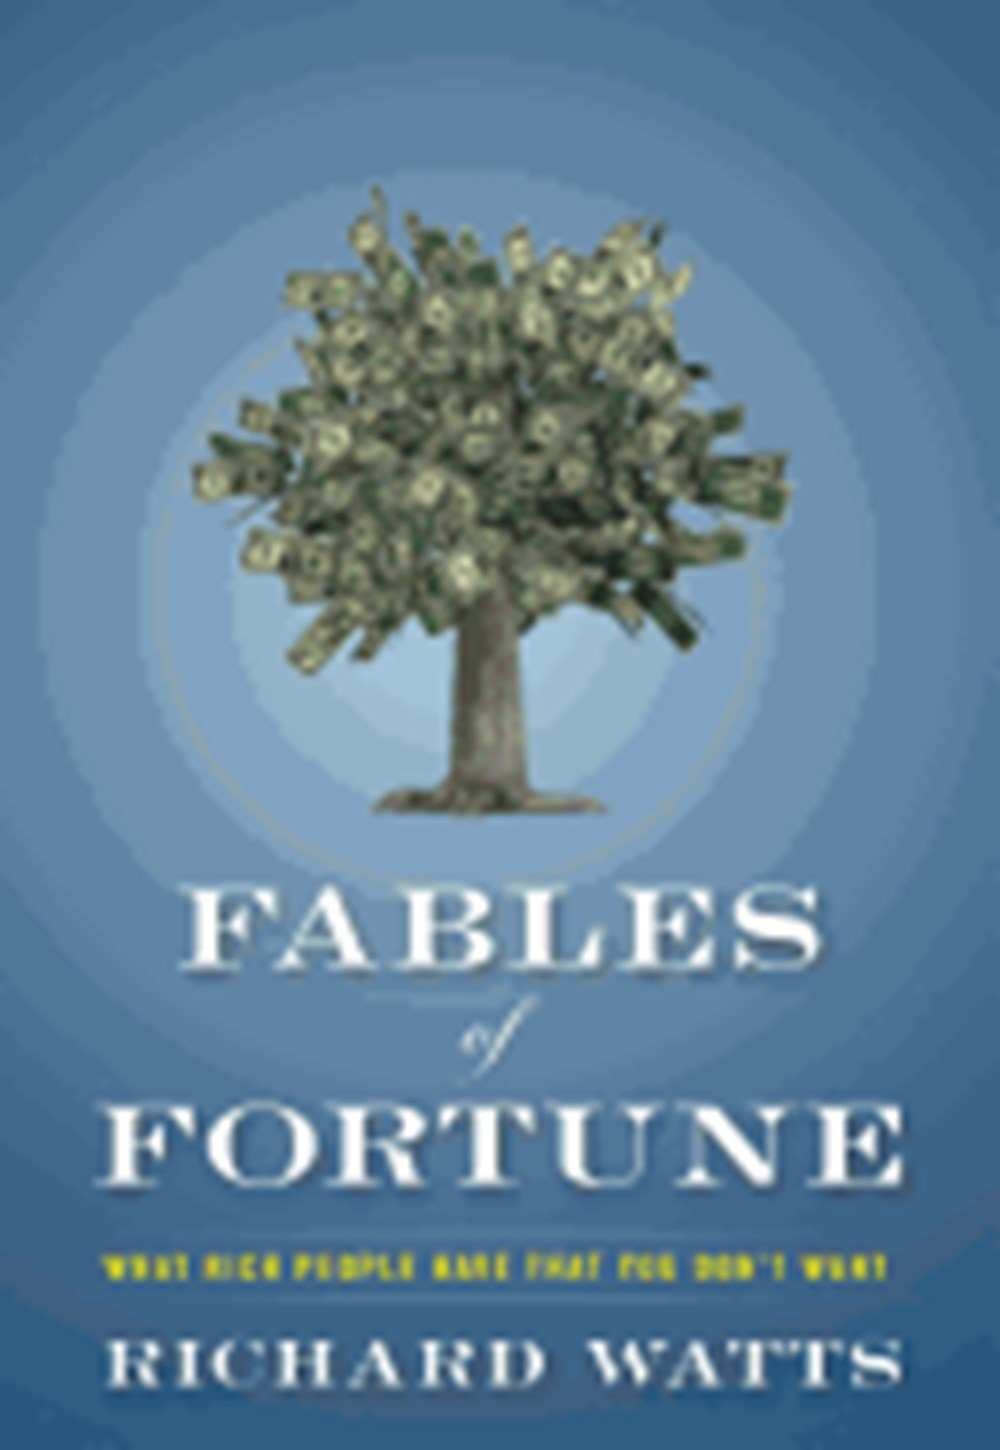 Fables of Fortune What Rich People Have That You Don't Want